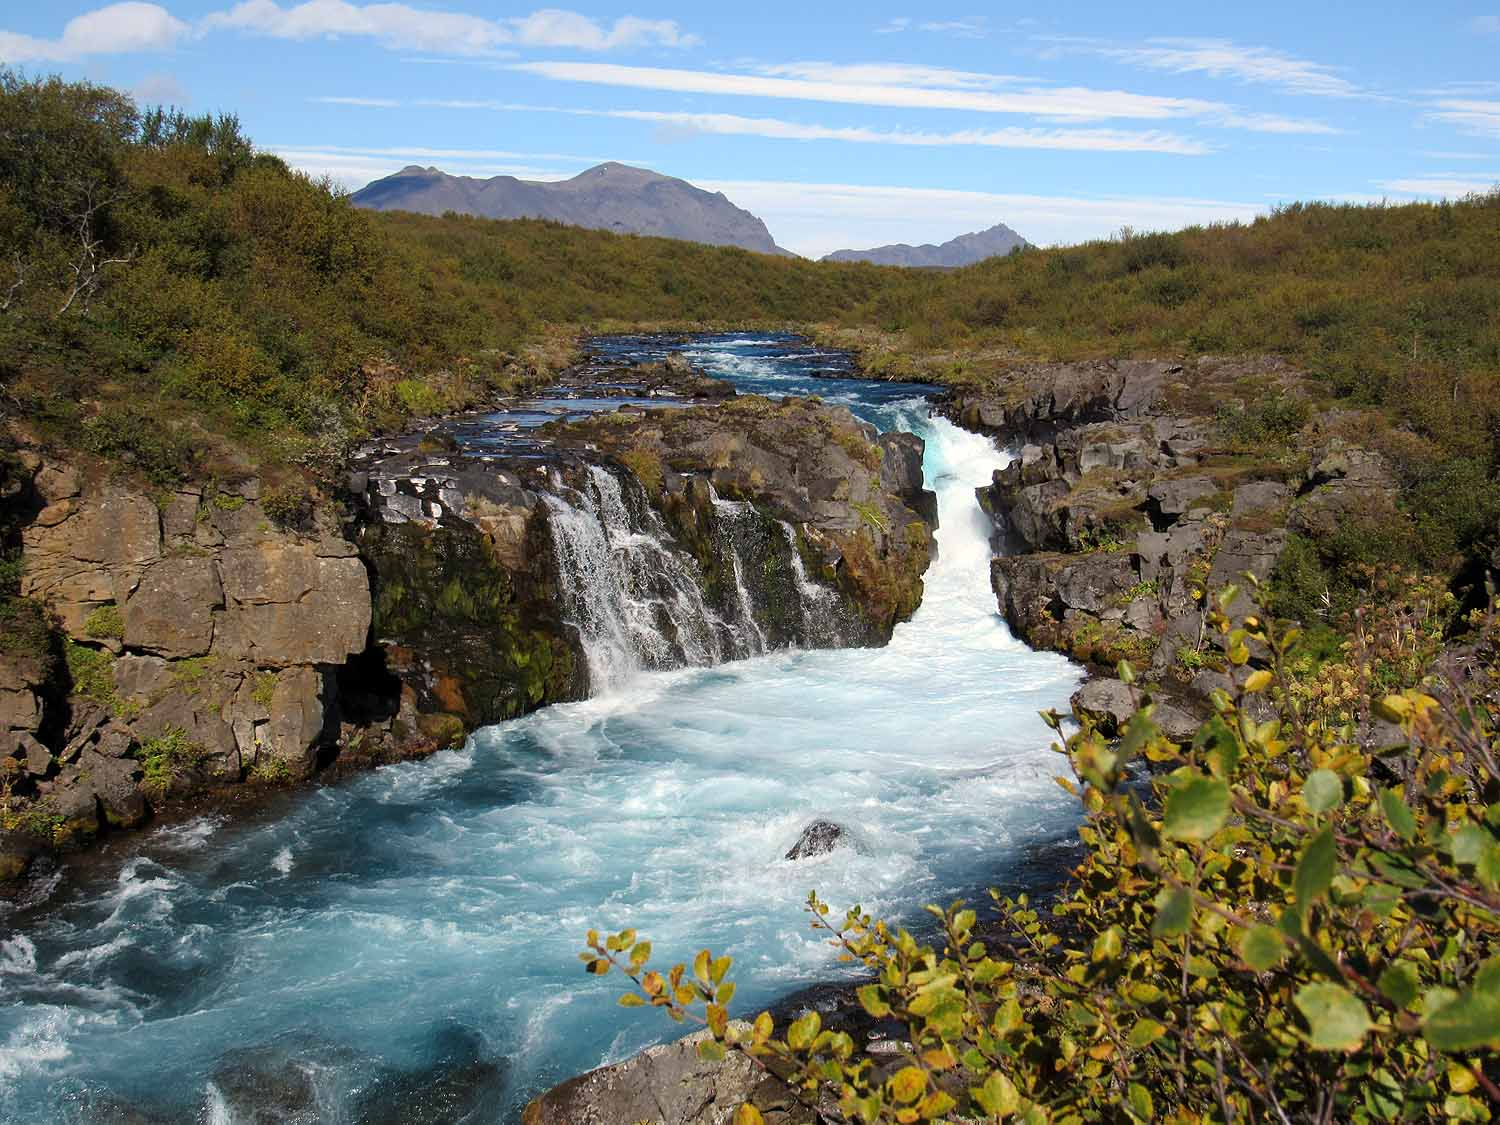 iceland-bruarfoss-waterfall-blue-water-lower-falls.JPG